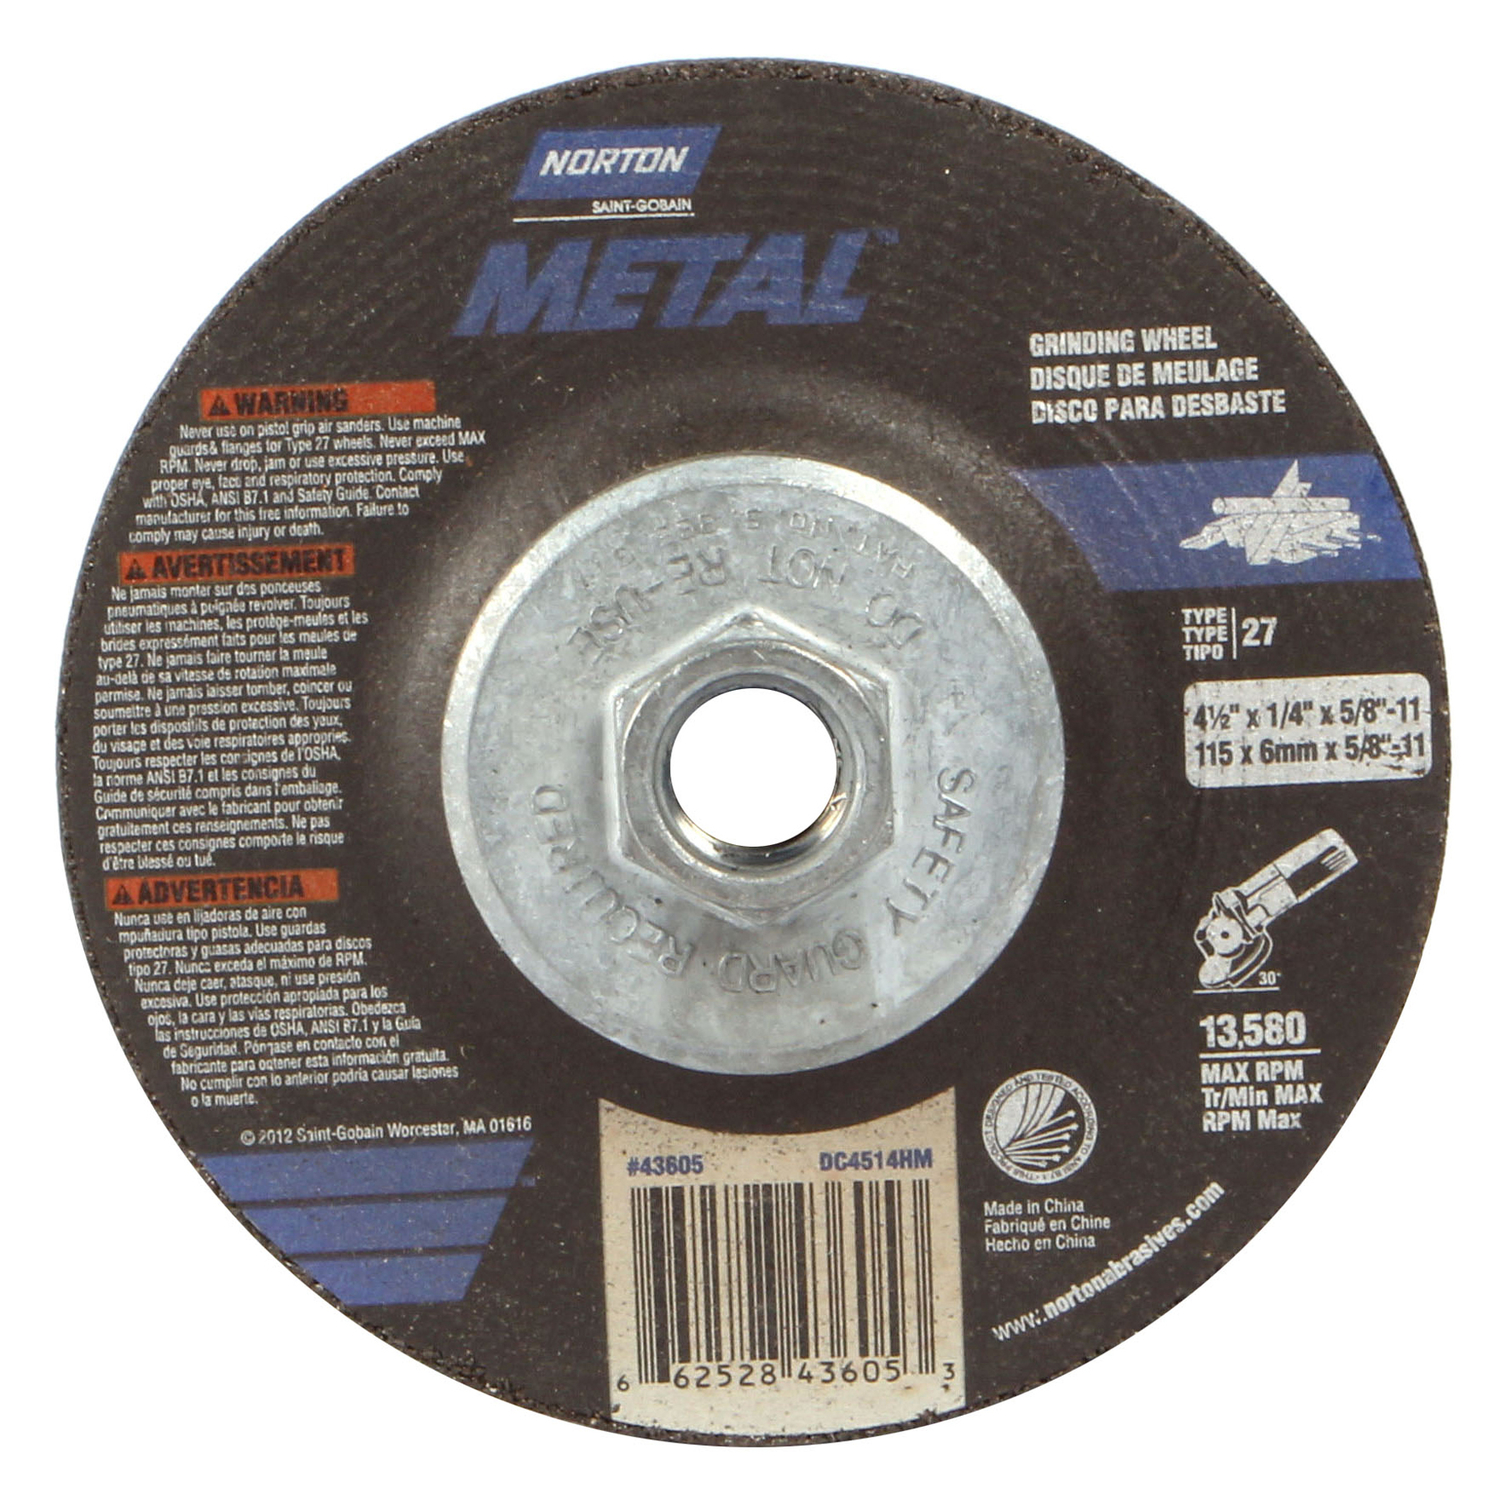 Norton  4-1/2 in. Dia. x 1/4 in. thick  x 5/8 in.   Aluminum Oxide  Grinding Wheel  13580 rpm 1 pc.